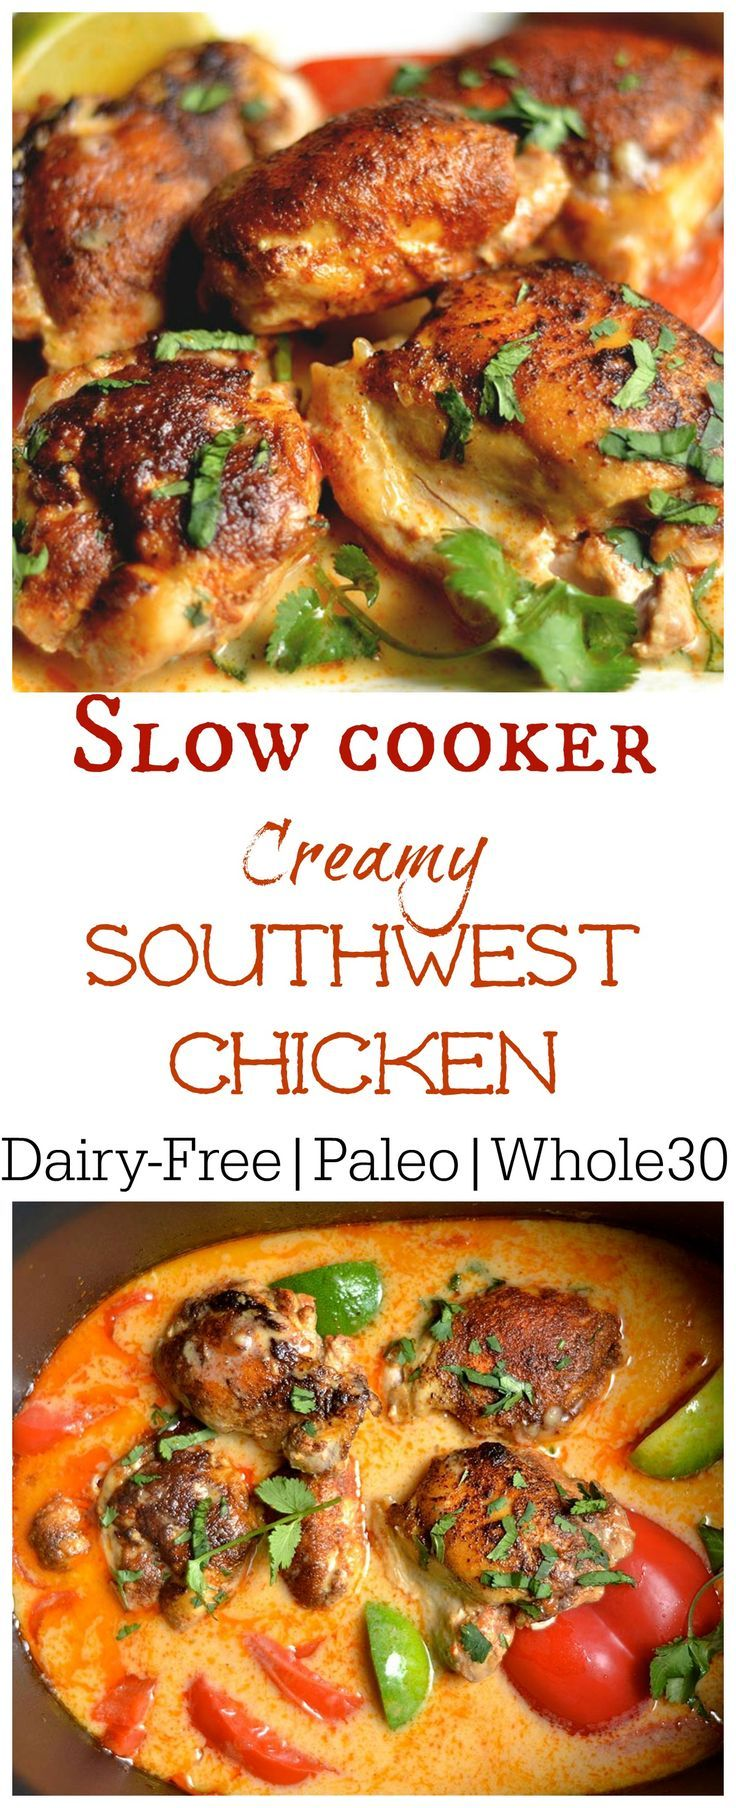 Super easy and packed with flavor this weeknight dinner is one the whole family will love! Set it and forget it with your slow cooker!  #21DSD